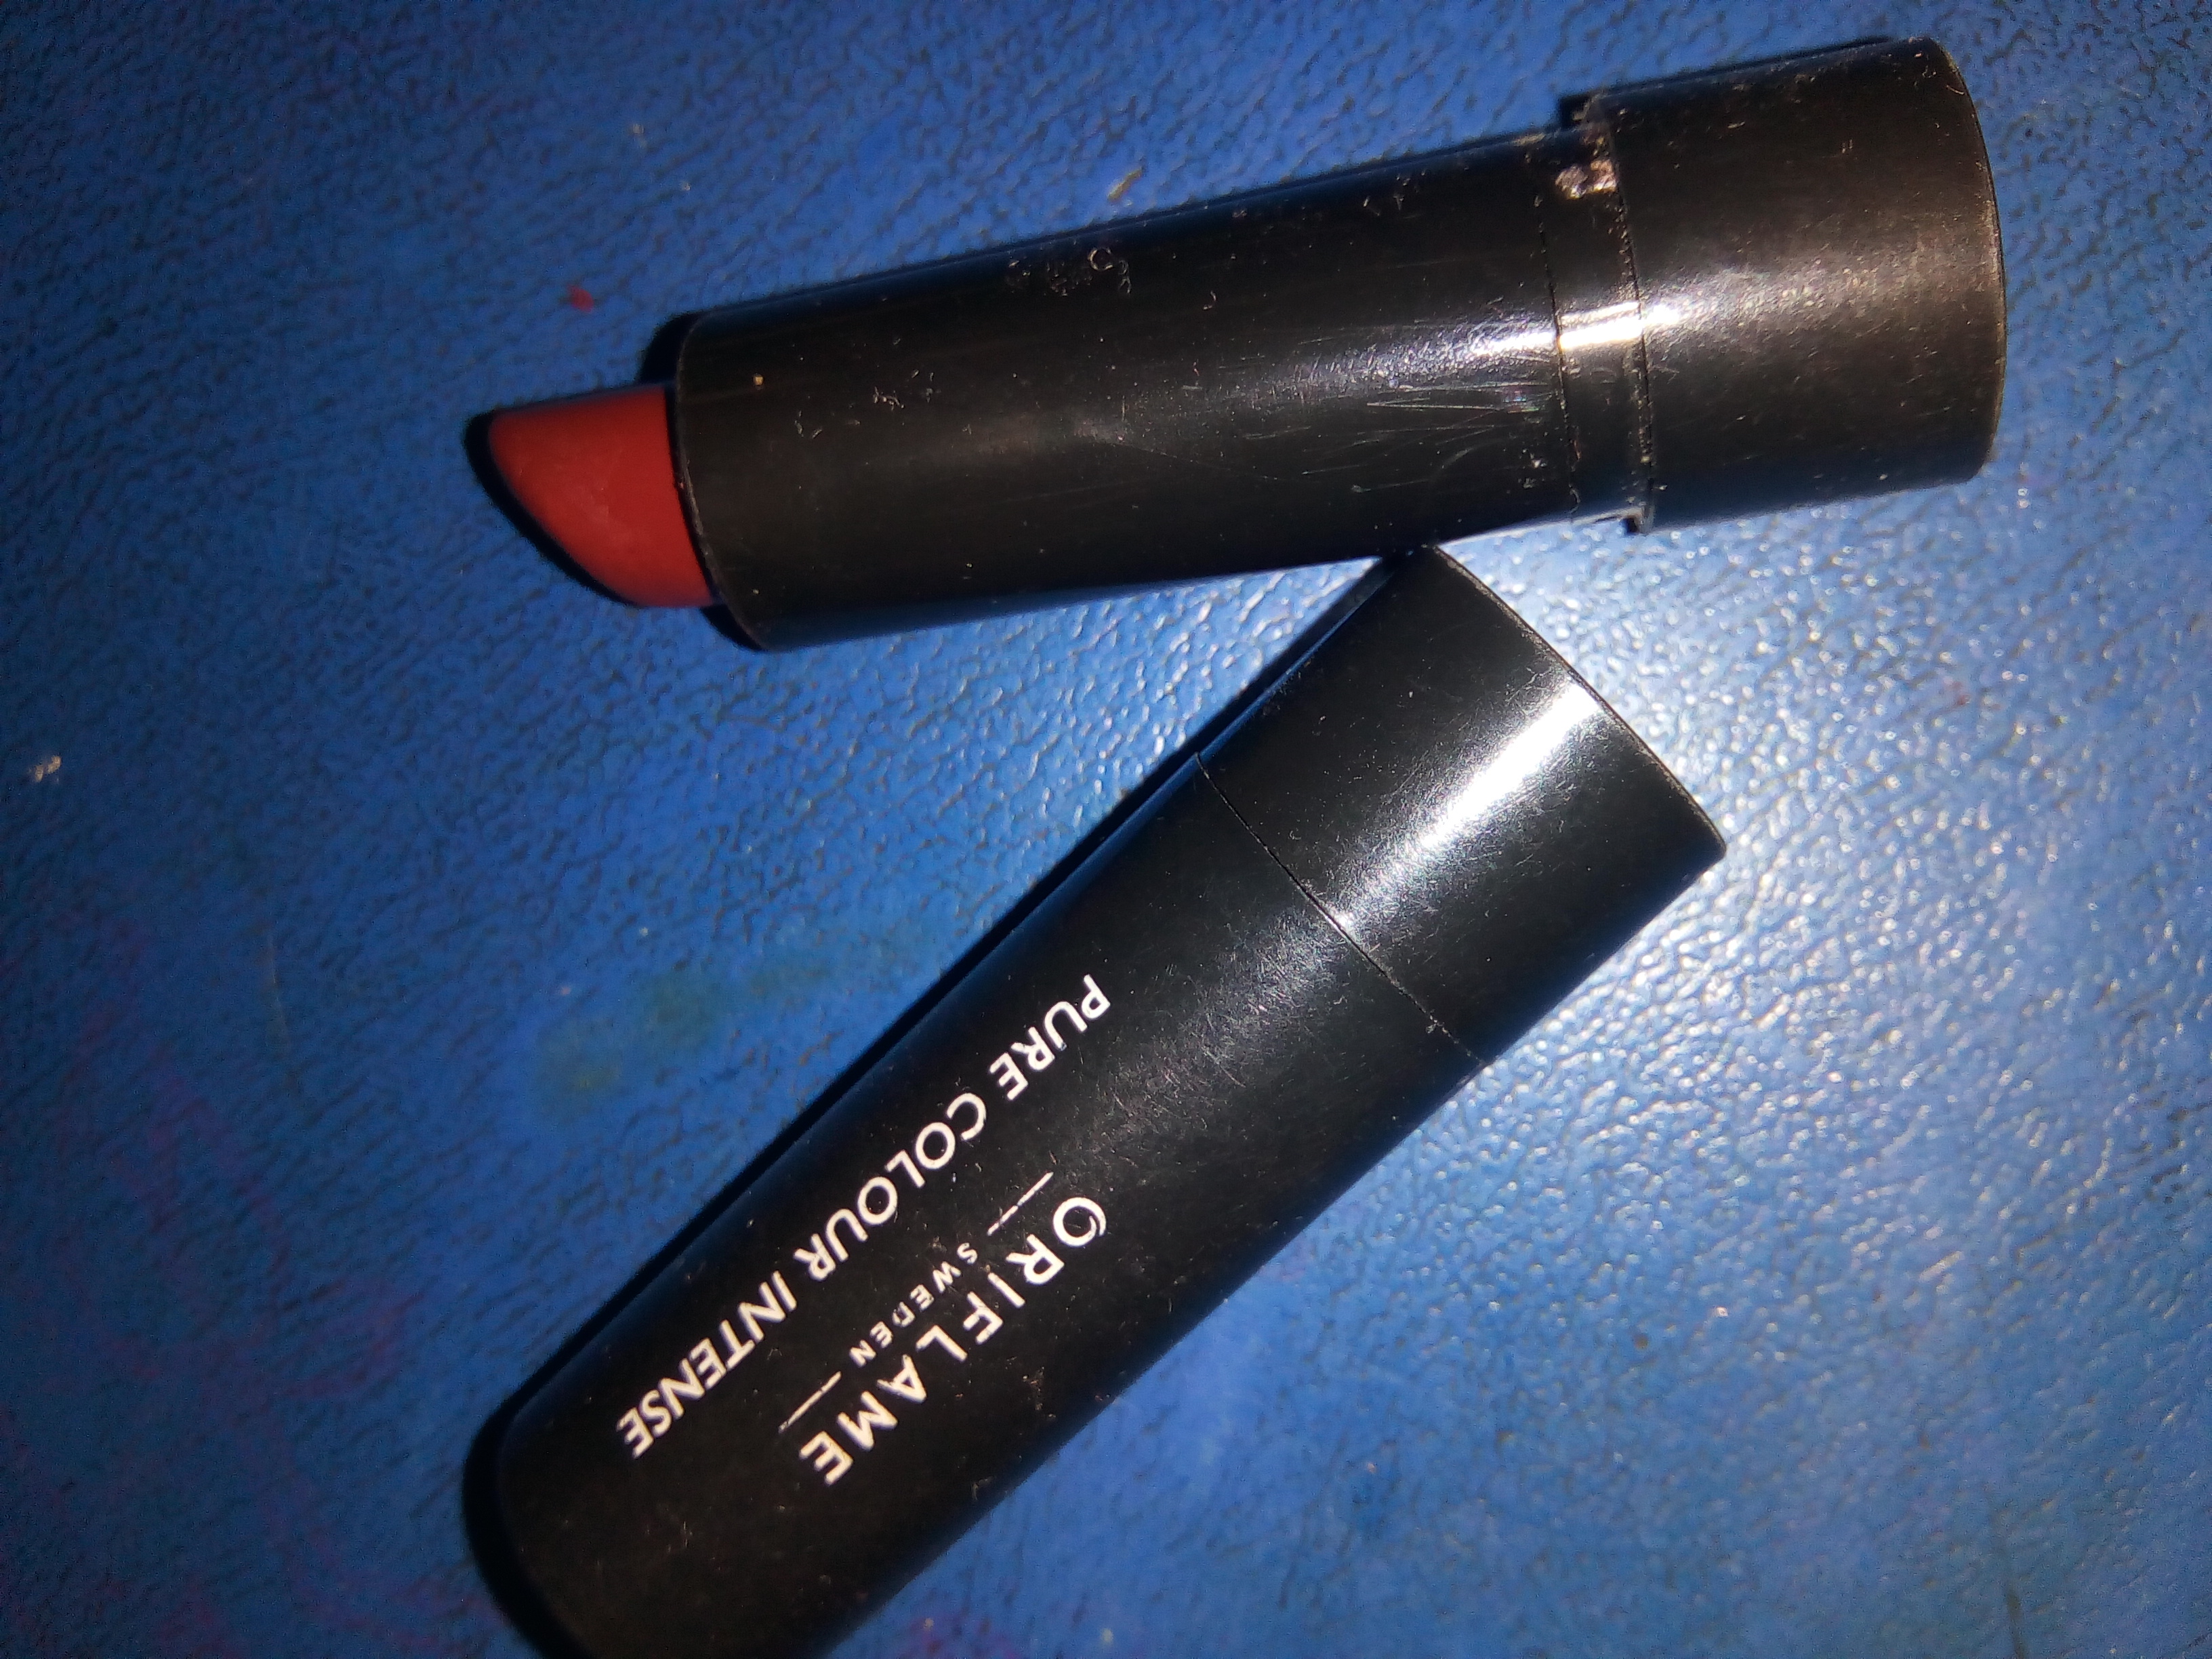 Oriflame Pure Colour Intense Lipstick-Perfect lipstick for everyday wear-By aneesha